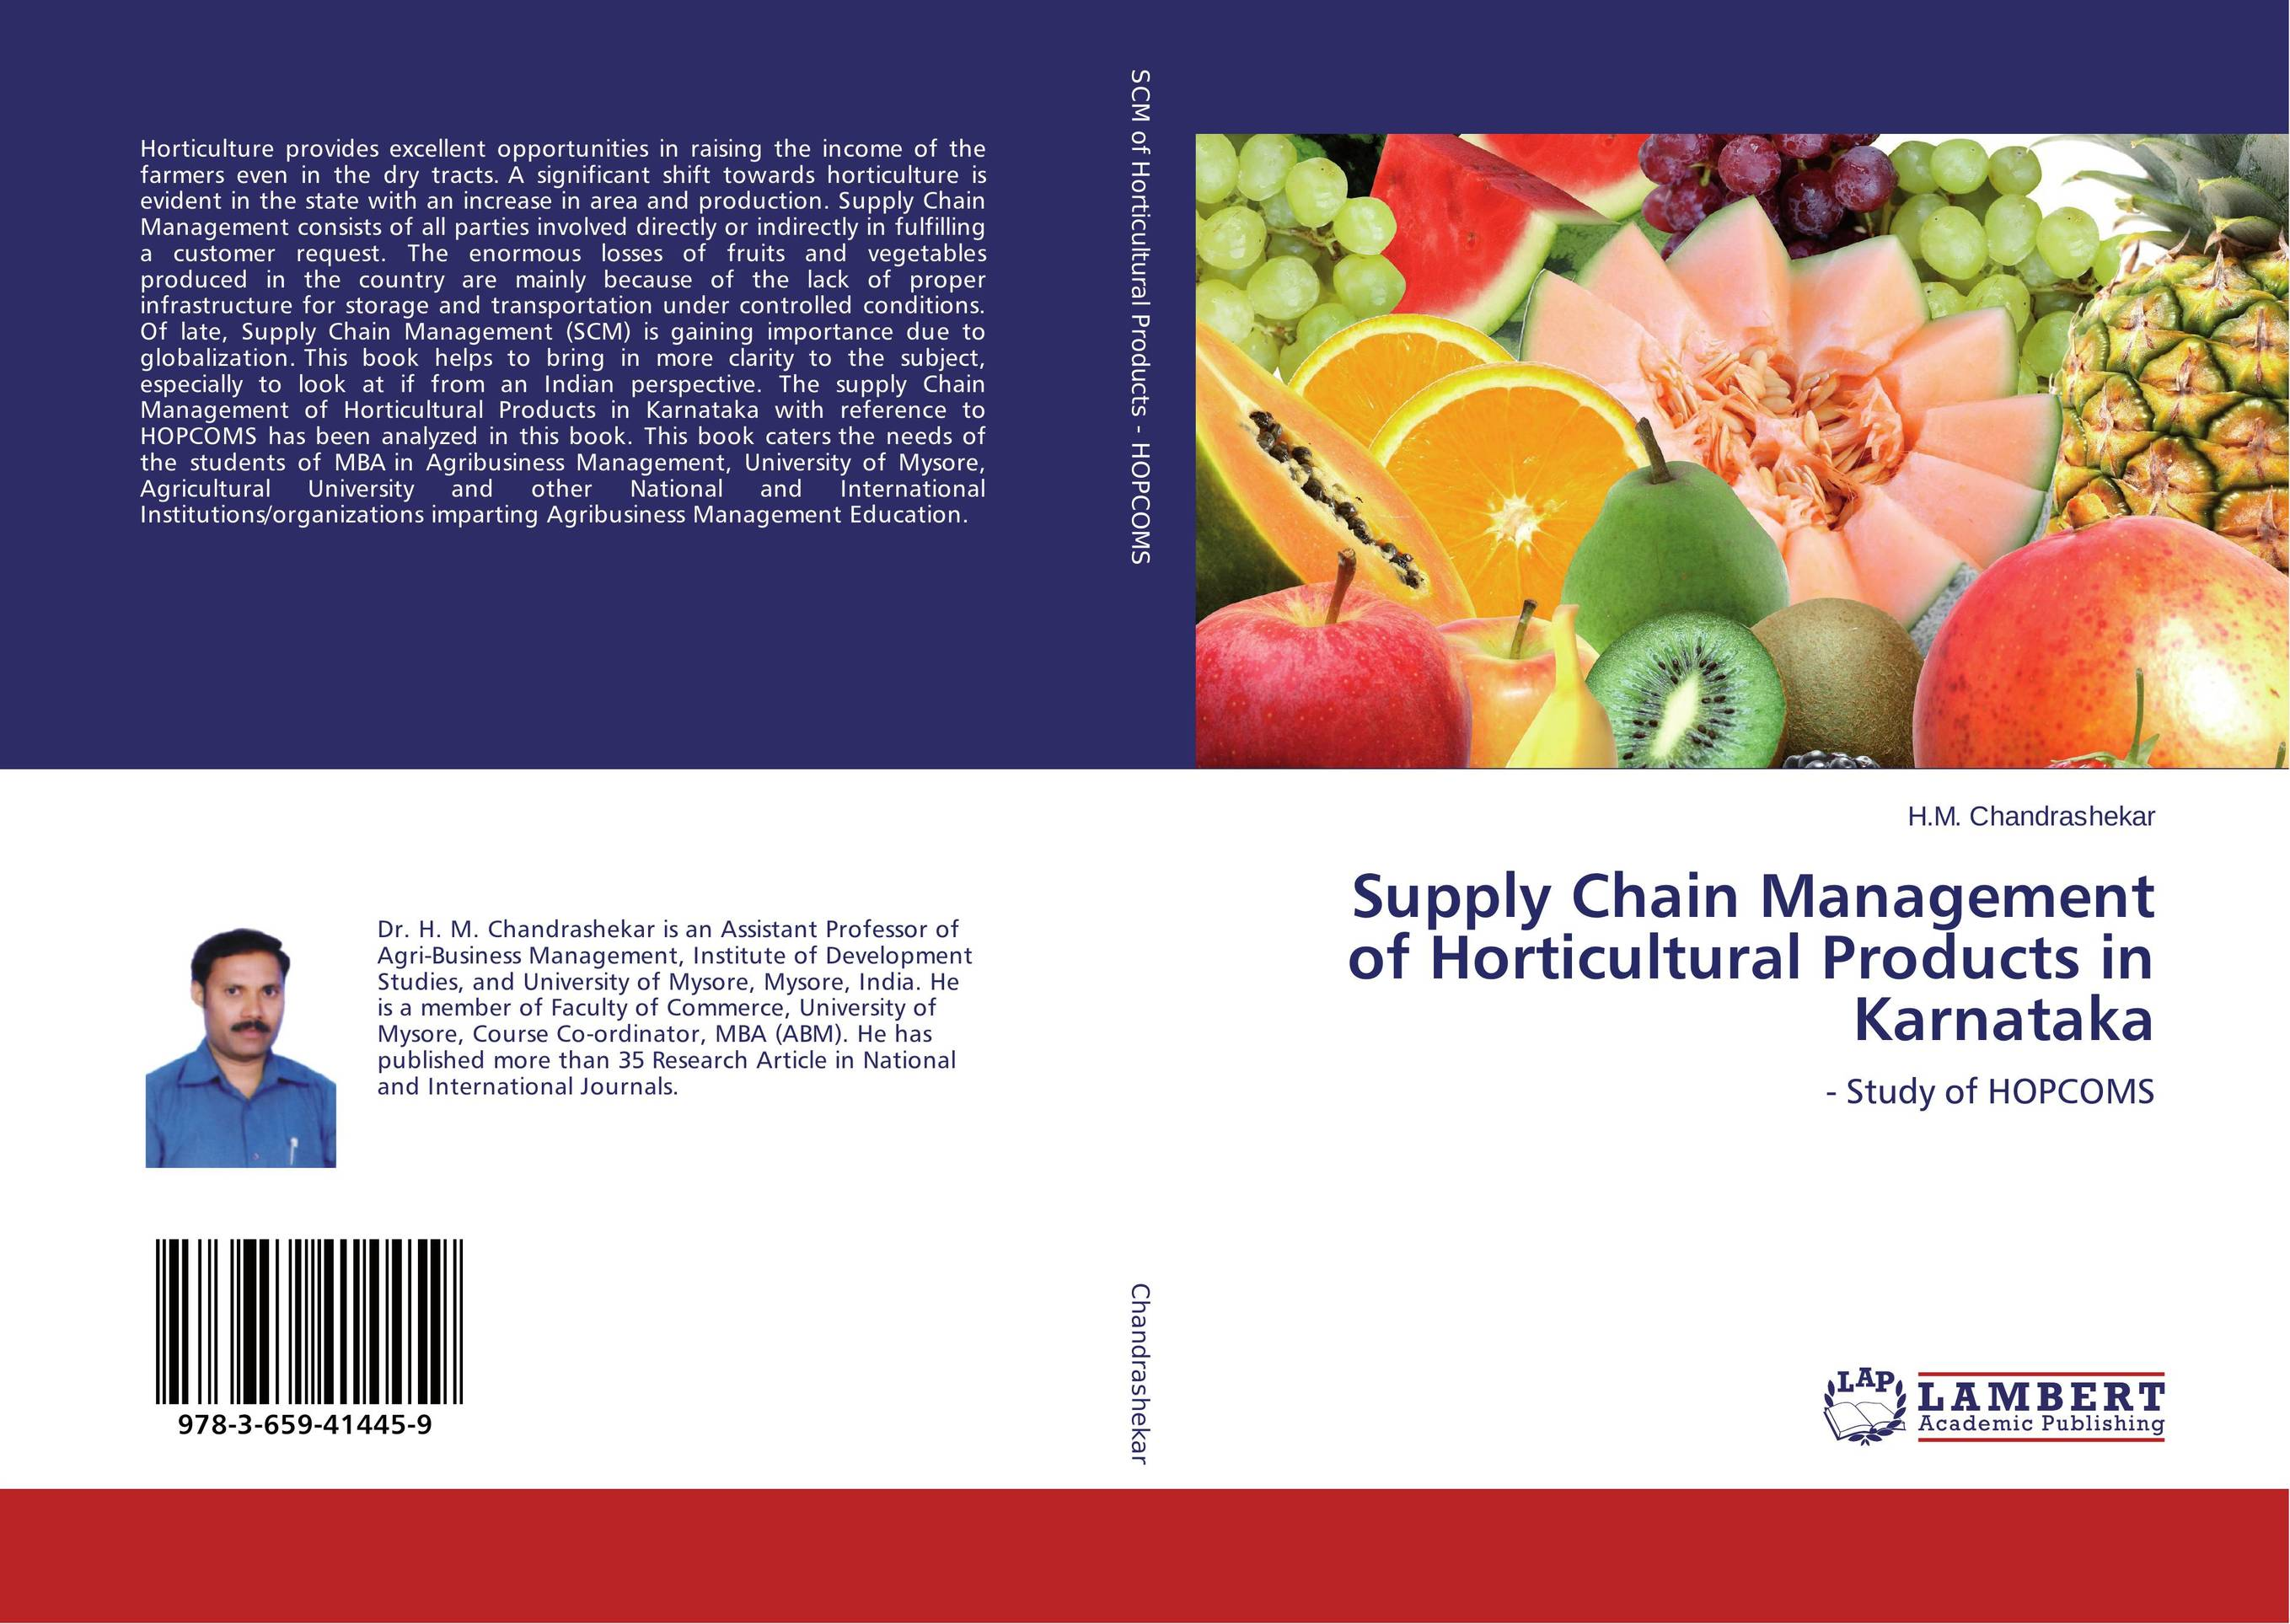 Supply Chain Management of Horticultural Products in Karnataka dairy supply chain management